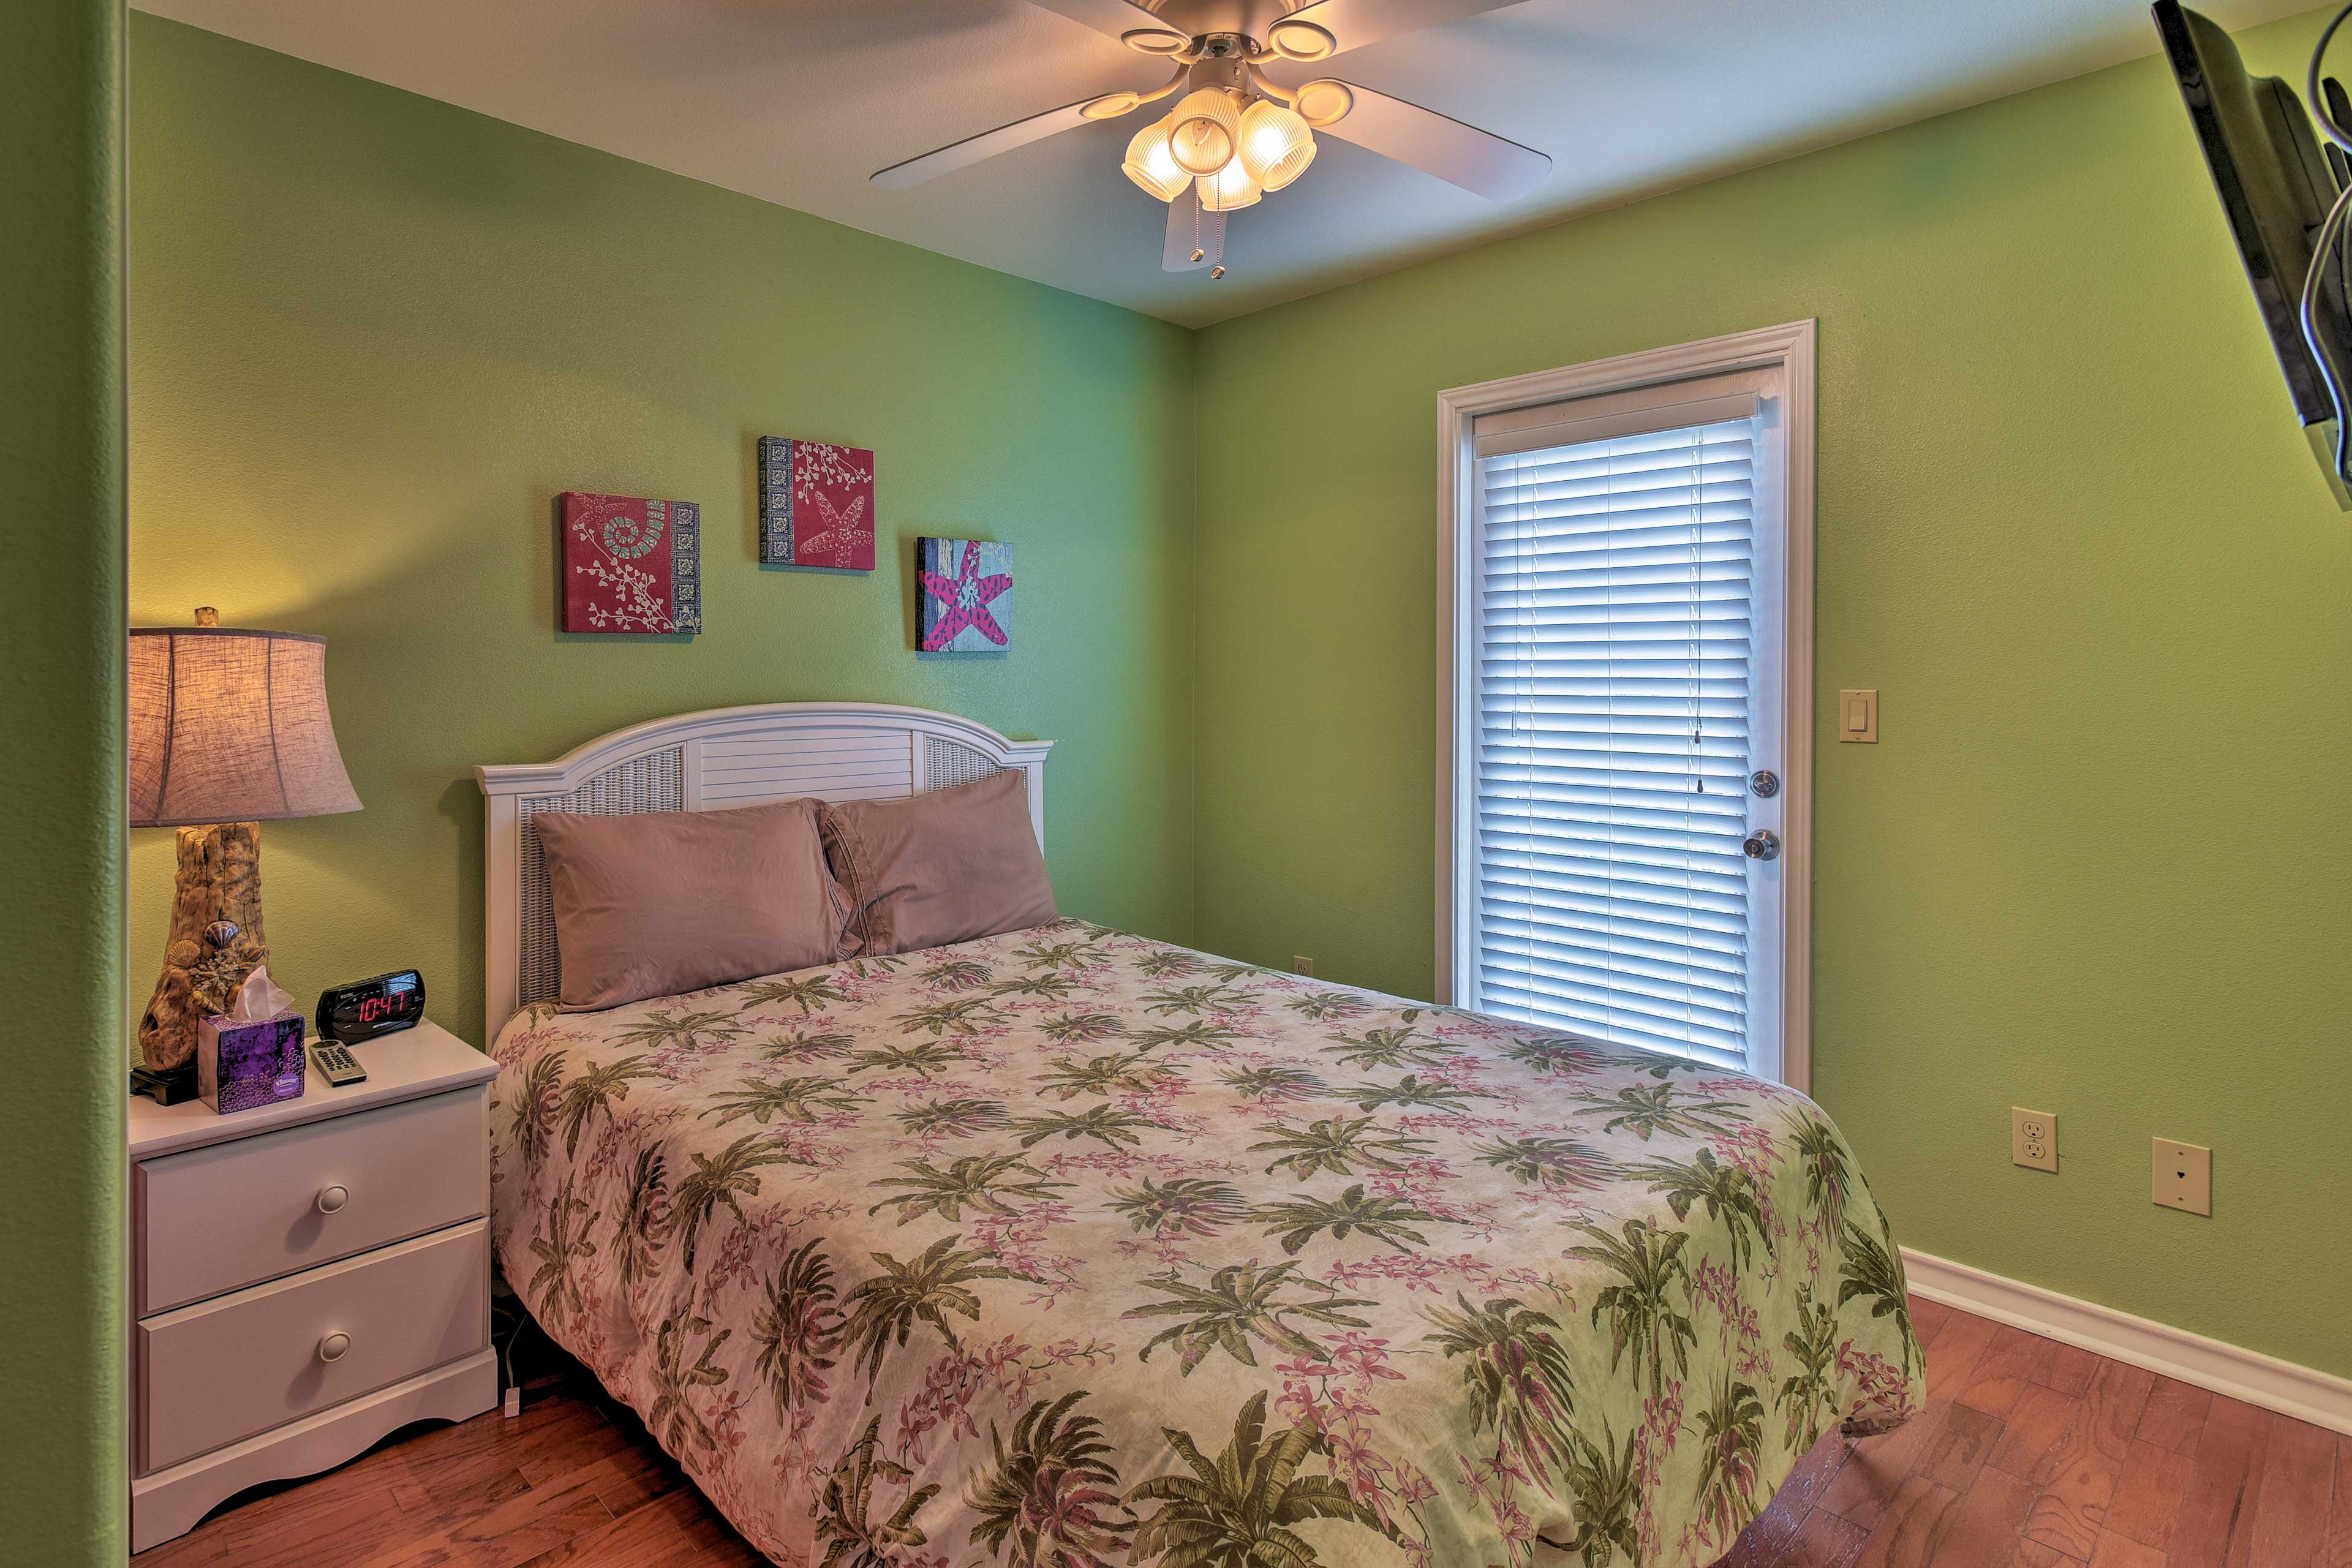 Two can claim this bright tropical room!